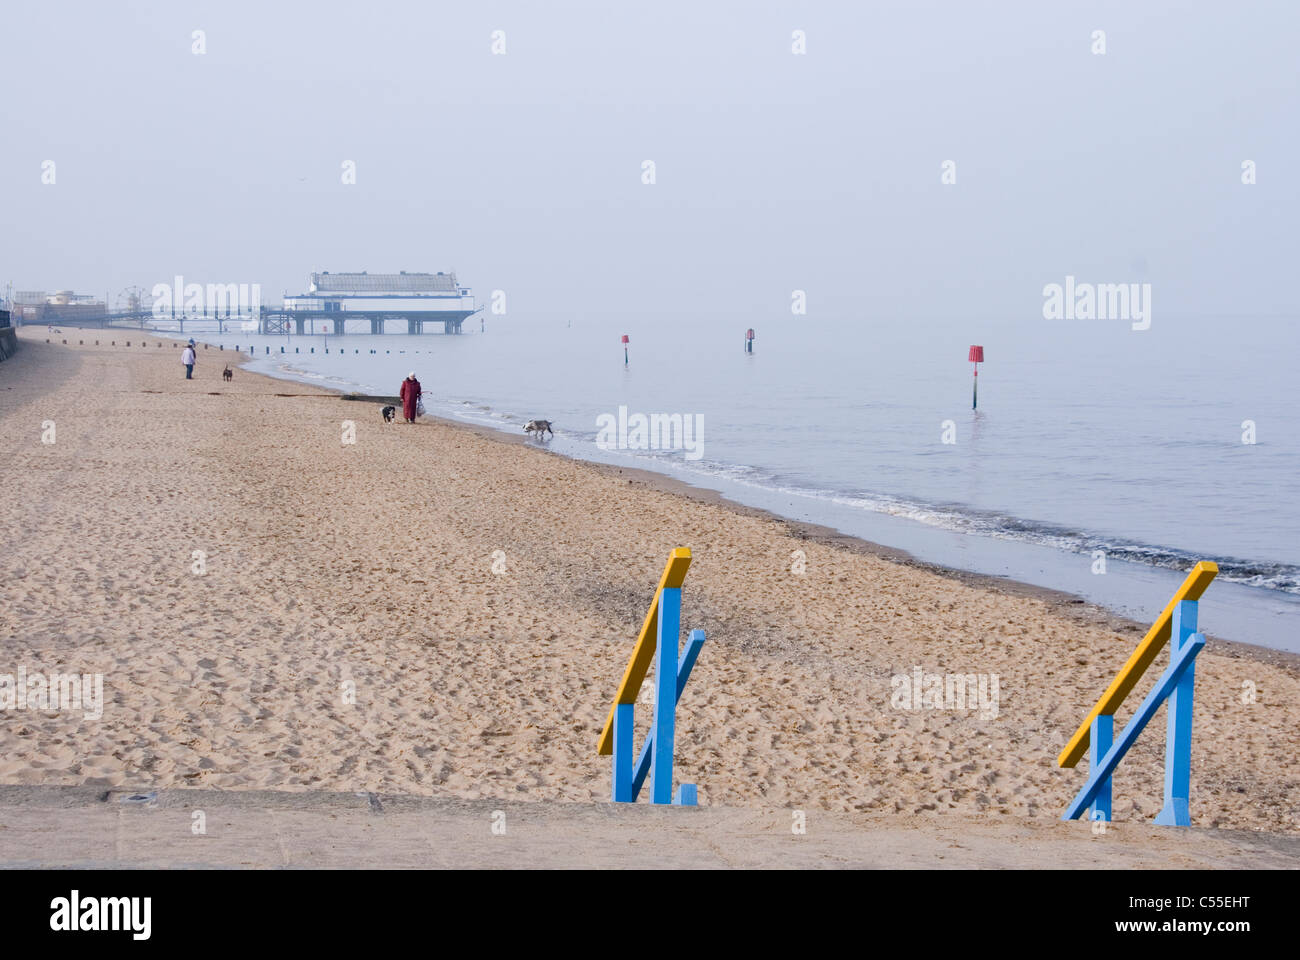 Early Spring Day on the Sandy Beach at Cleethorpes, South Humberside, UK - Stock Image